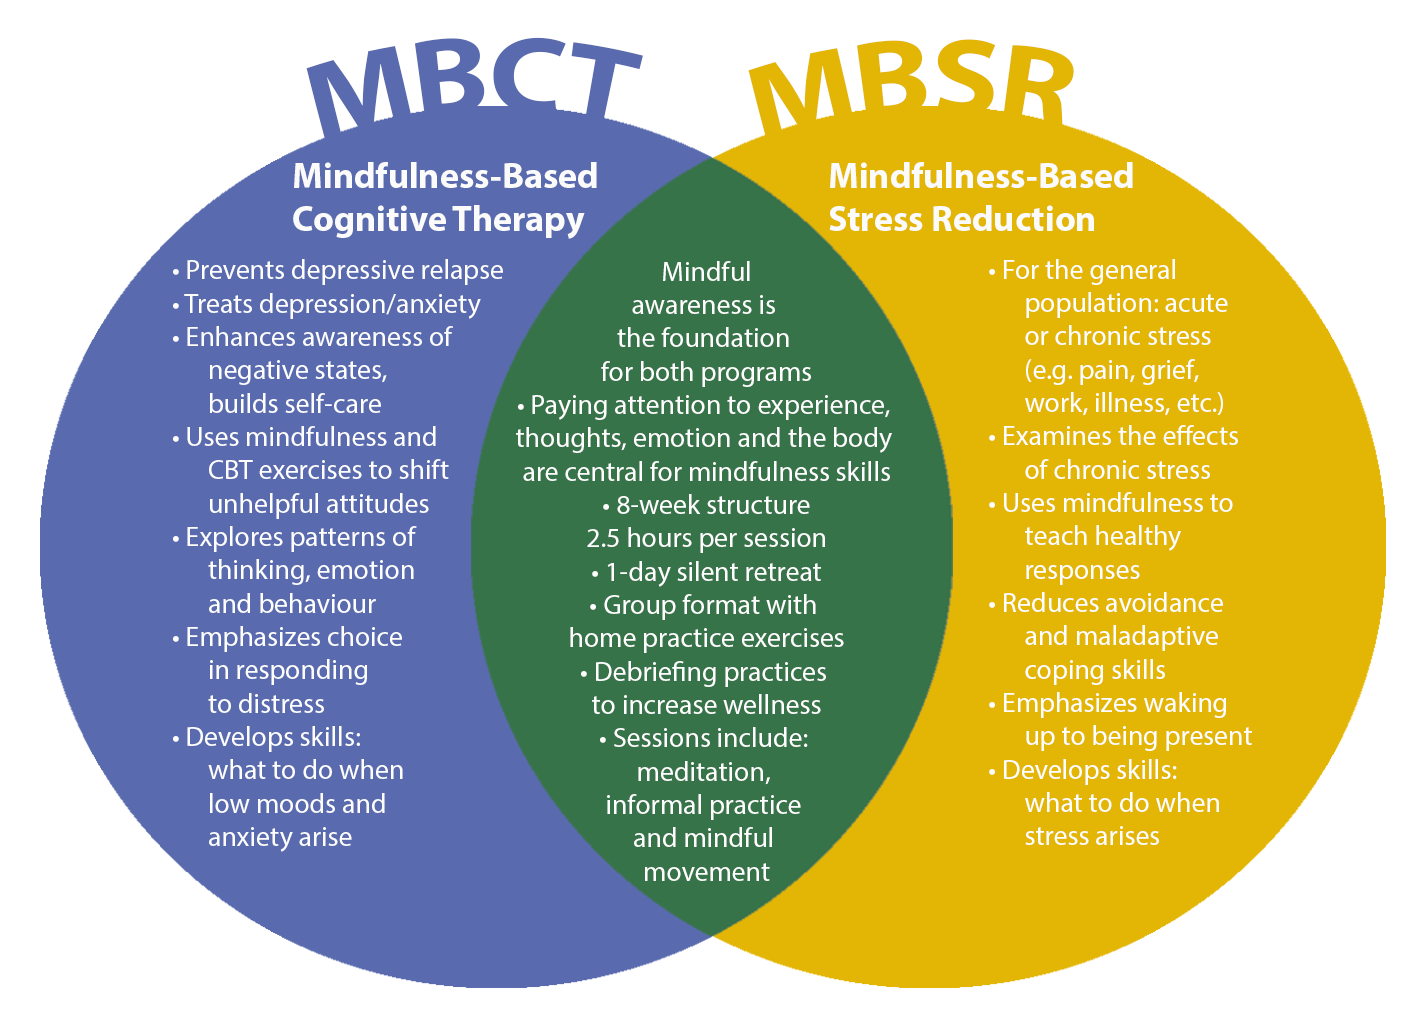 Learn About The Similarities And Differences Of Mindfulness Based